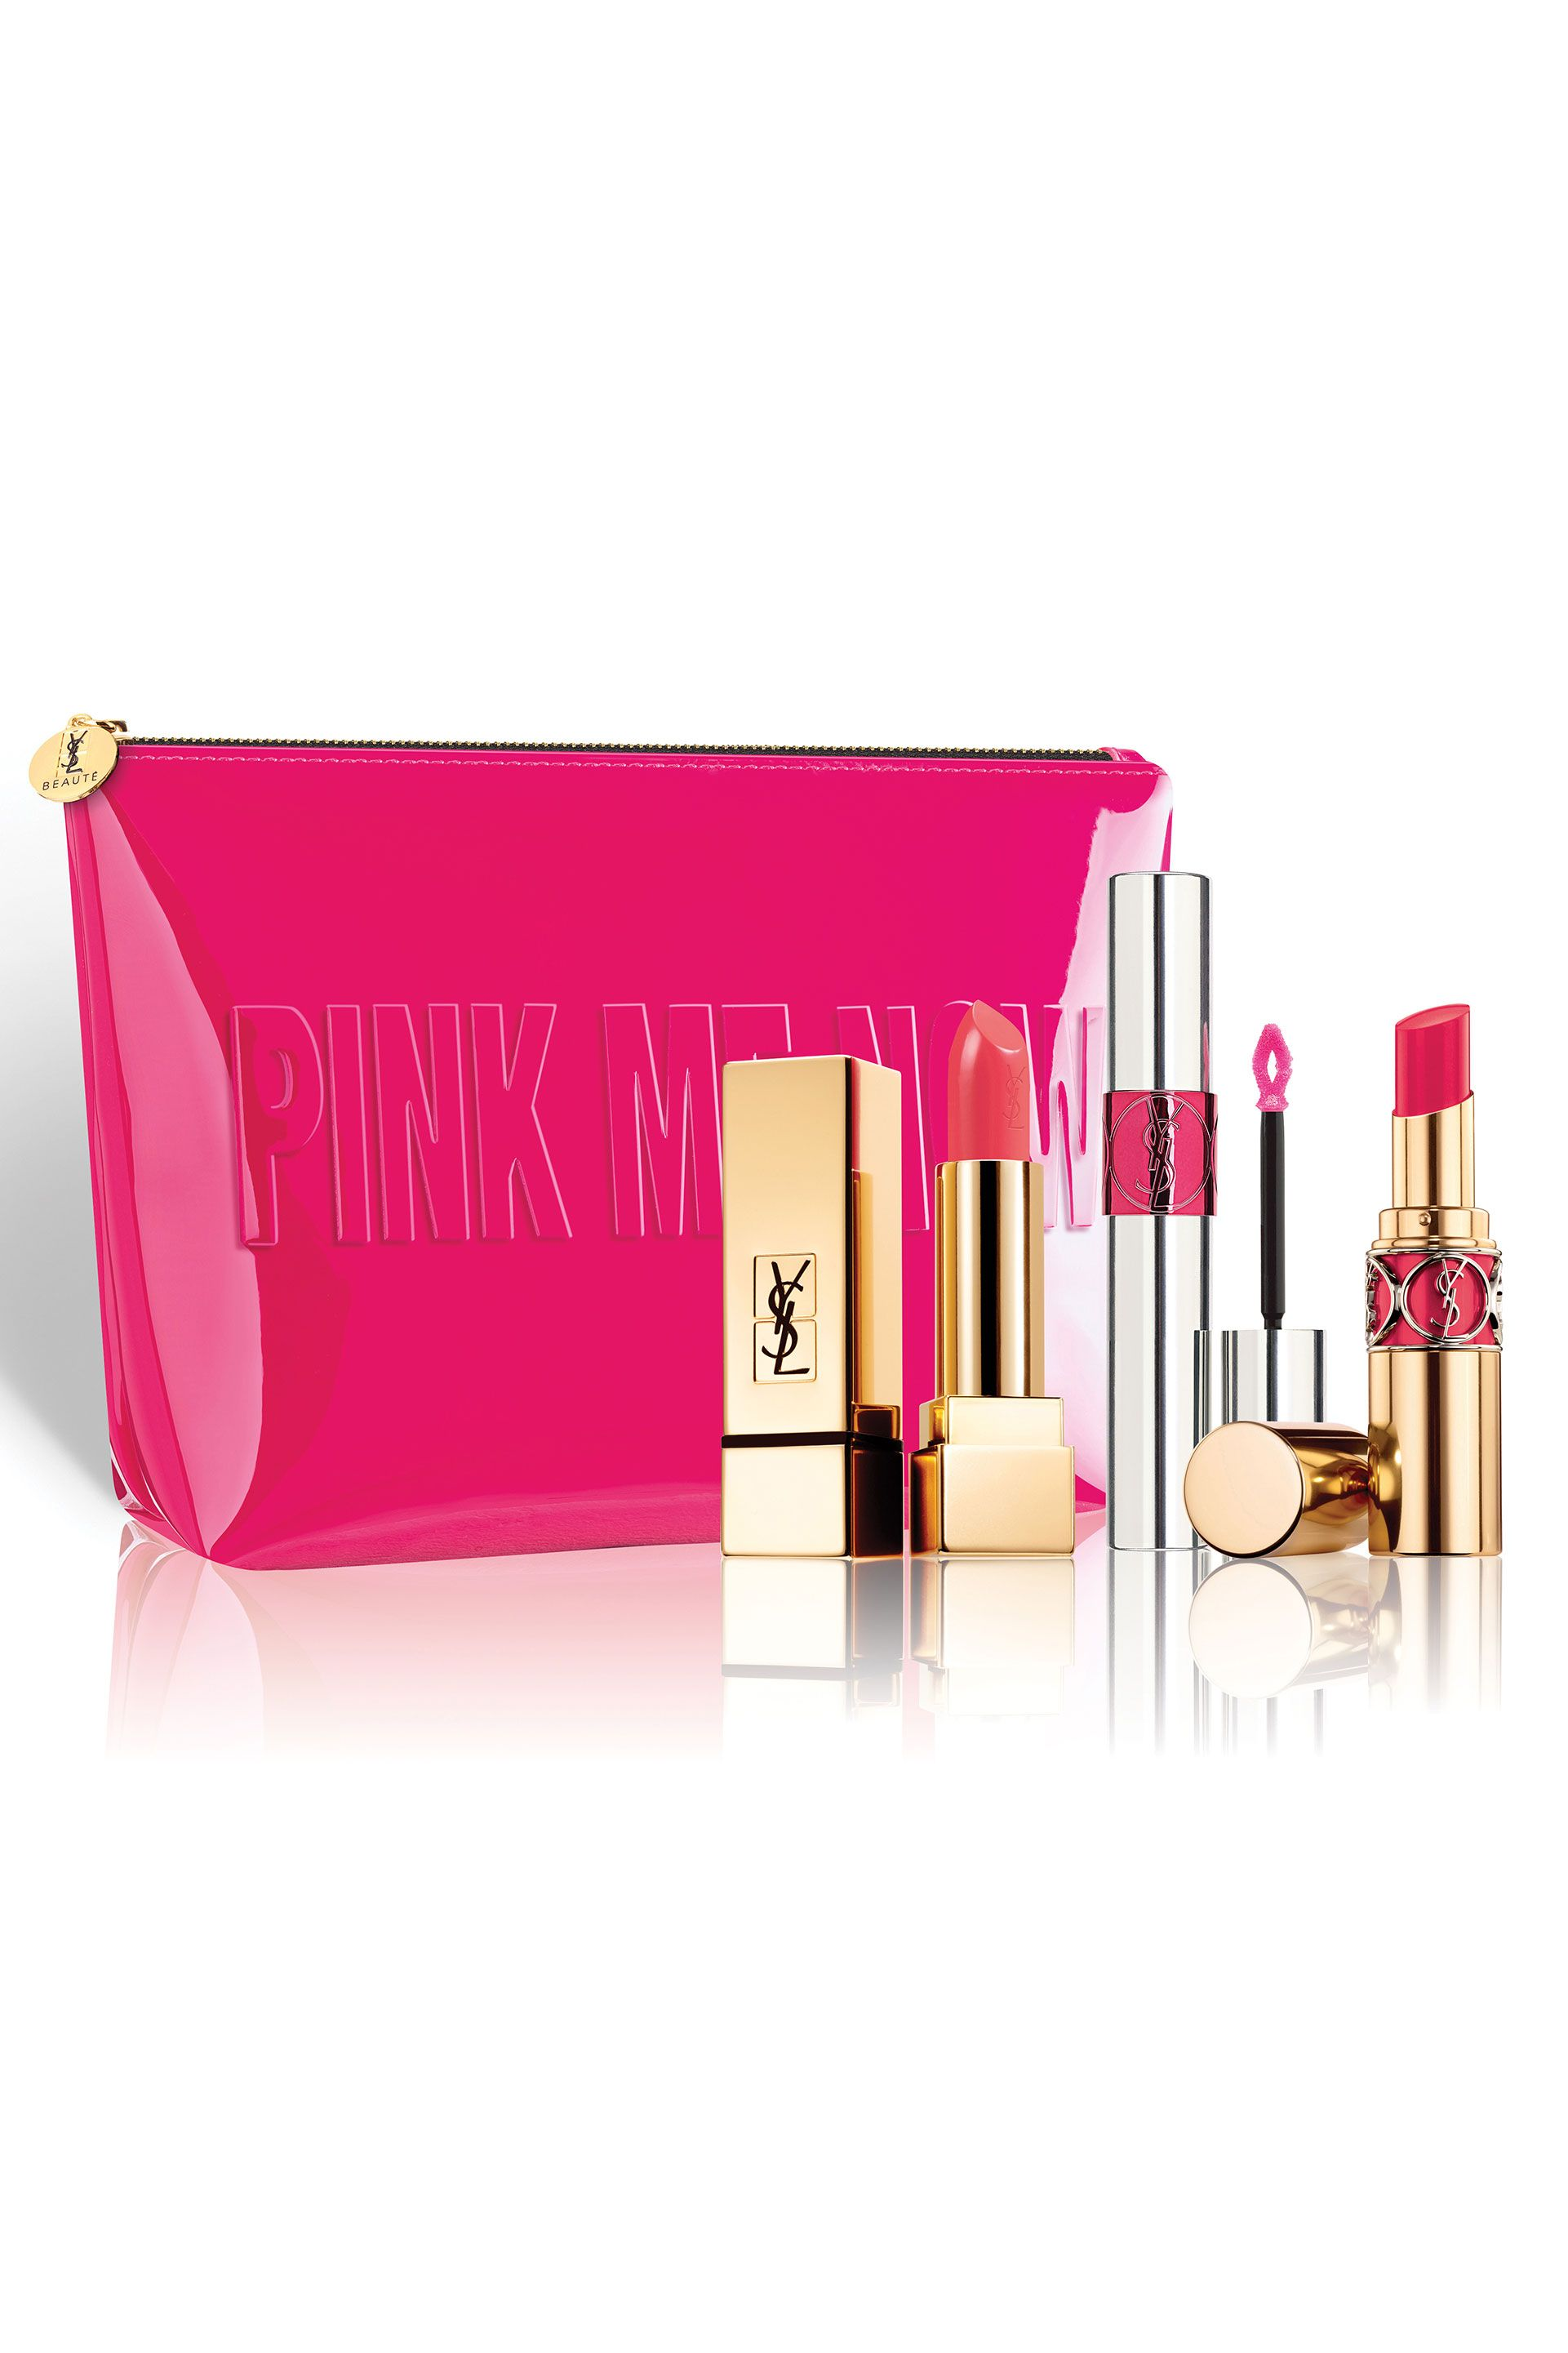 """<p> YSL Beauty Pink Lip Set $74; <a href=""""http://shop.nordstrom.com/s/yves-saint-laurent-lip-set-106-value/4625484?origin=category-personalizedsort"""" target=""""_blank"""" data-tracking-id=""""recirc-text-link"""">Nordstrom.com</a></p><p><span class=""""redactor-invisible-space"""" data-verified=""""redactor"""" data-redactor-tag=""""span"""" data-redactor-class=""""redactor-invisible-space""""></span></p>"""